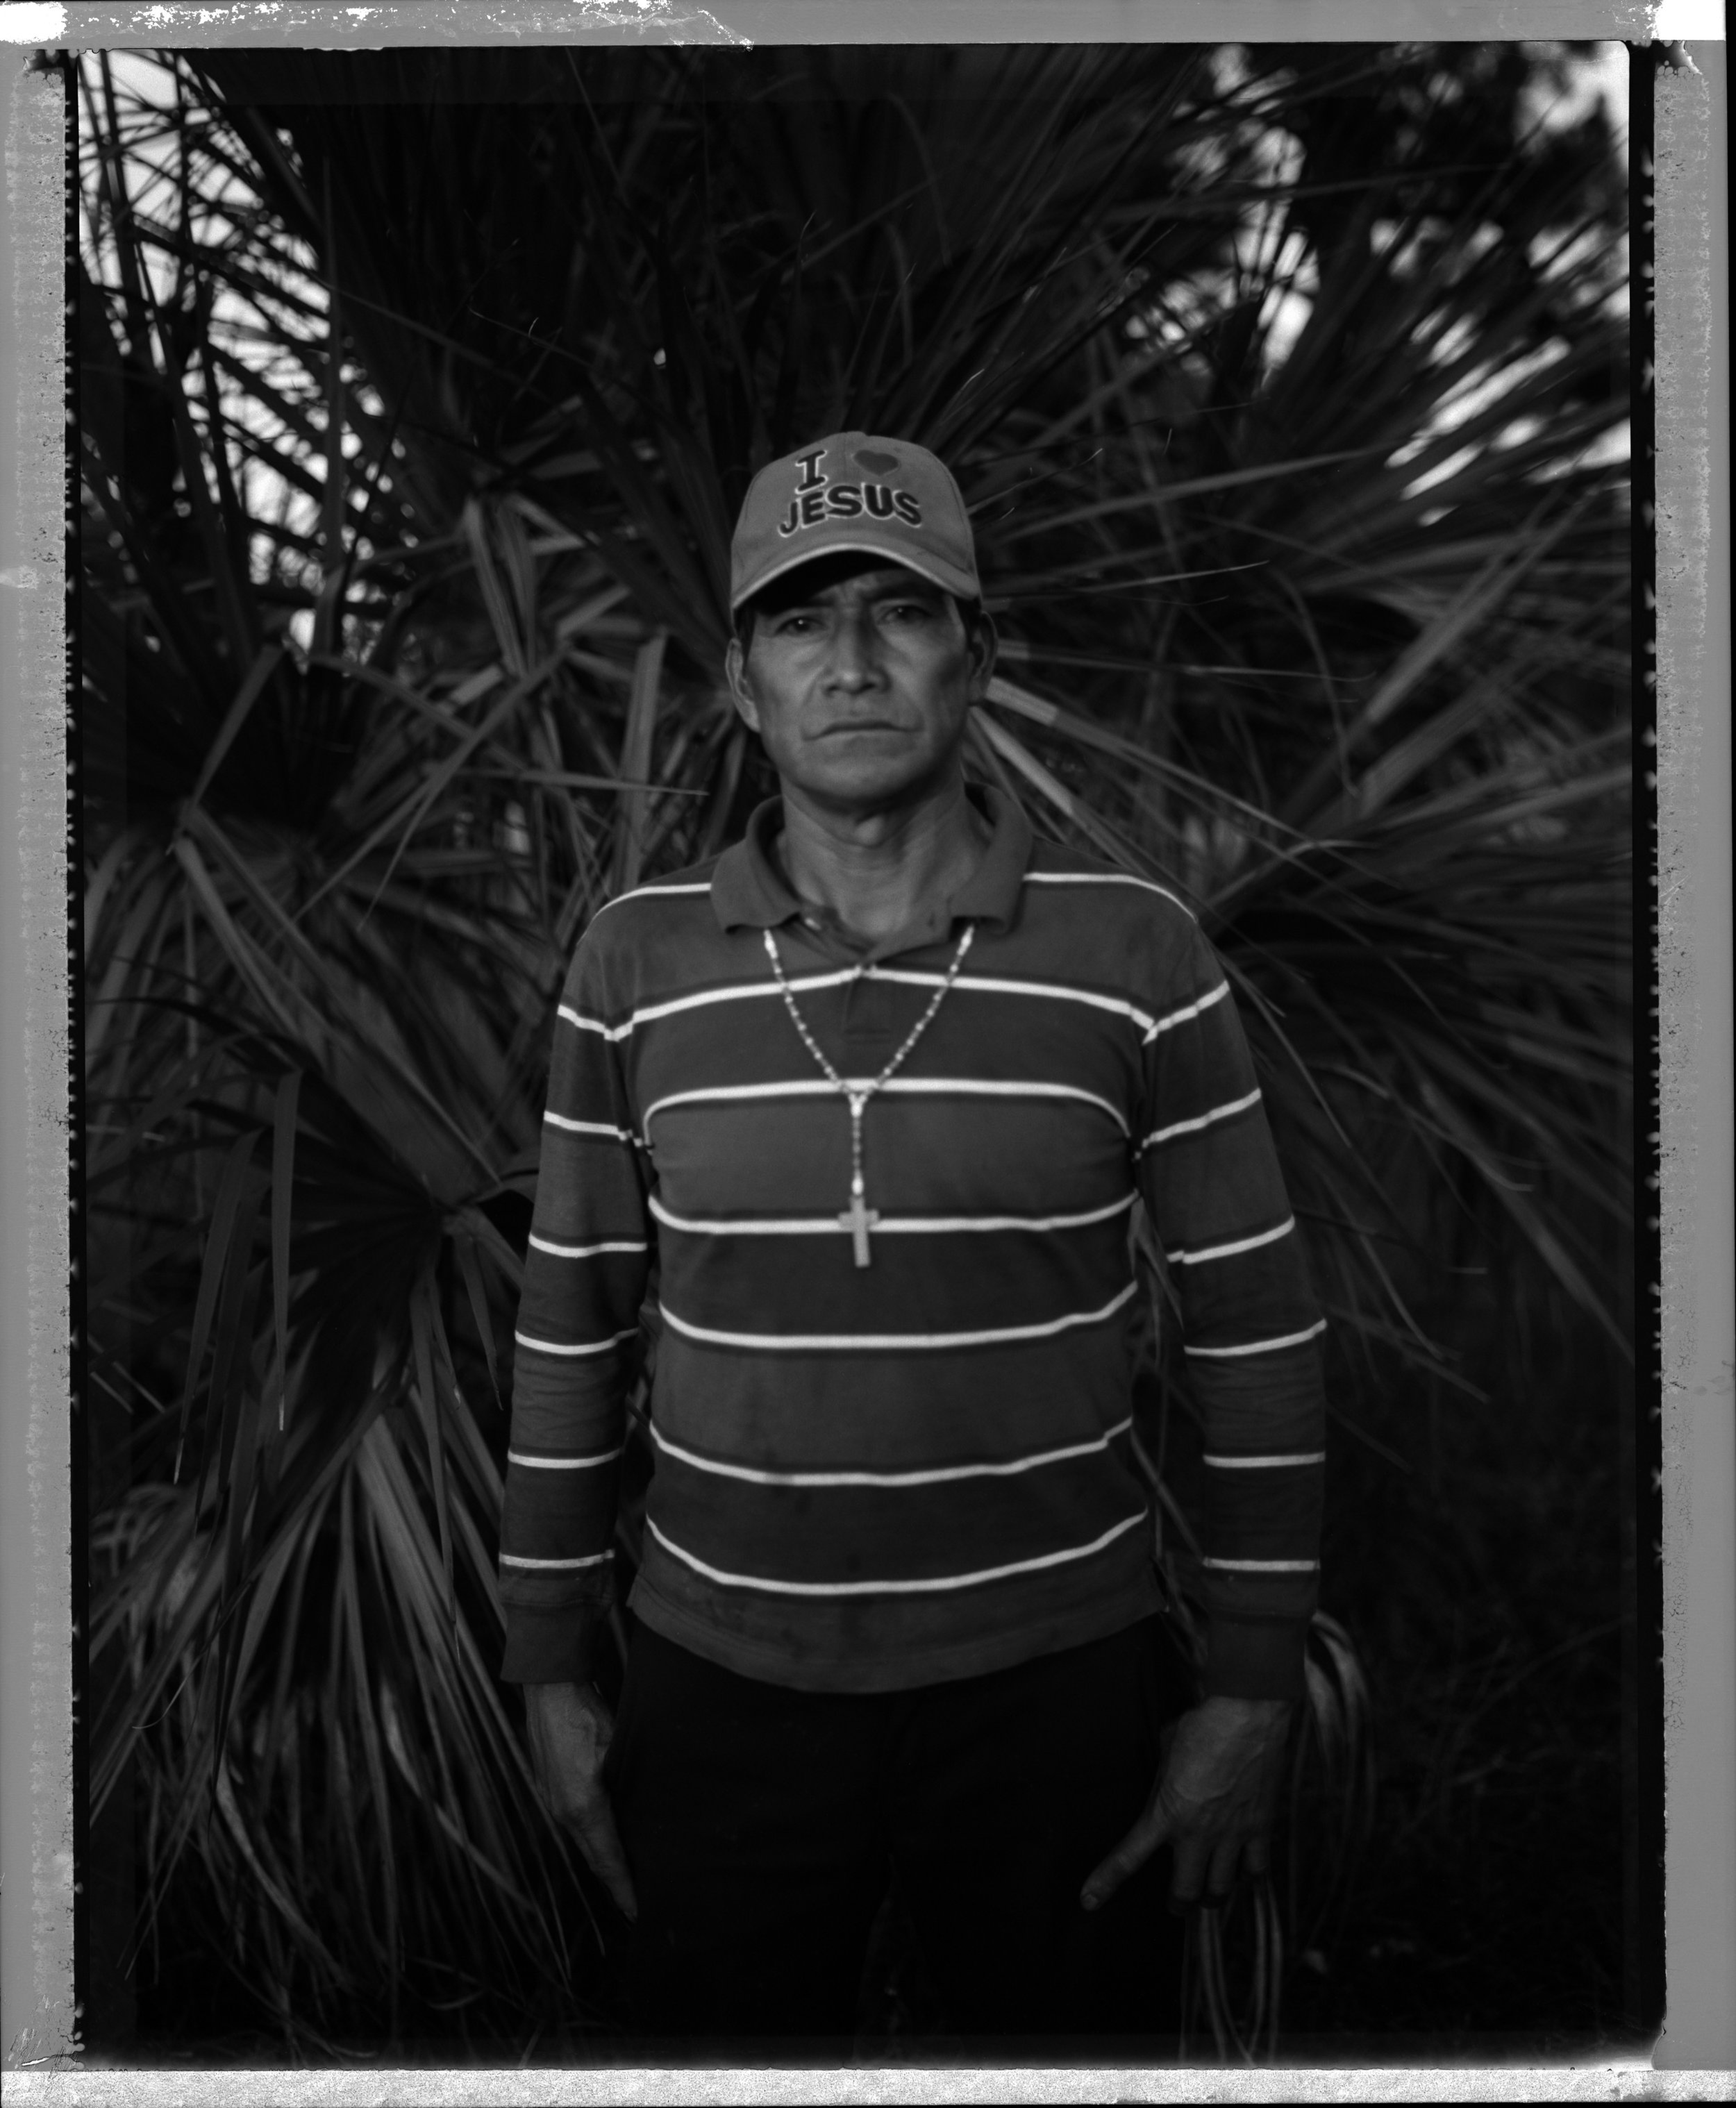 Photographs of victims of forced labor in the United States. Photographs of victims of forced labor in the United States.   For more than a year Geronimo Sanchez Bravo was forced to work and live as a slave in downtown Immokalee for about a year. During that time he was forced to live in a large truck in the front yard of a normal looking house and pick tomatoes for his captors. . Eventually, several workers made a hole in the top of the truck and were able to escape and get help. They went directly to the Coalition of Immokalee Workers who helped Geronimo and the others to escape. Geronimo testified against his captors. He still lives in Immokalee and is happy that he's free. He now is an active member of the anti-slavery movement and works hard for the rights of his fellow workers. He still picks tomatoes.   This project is supported by Lexis Nexis